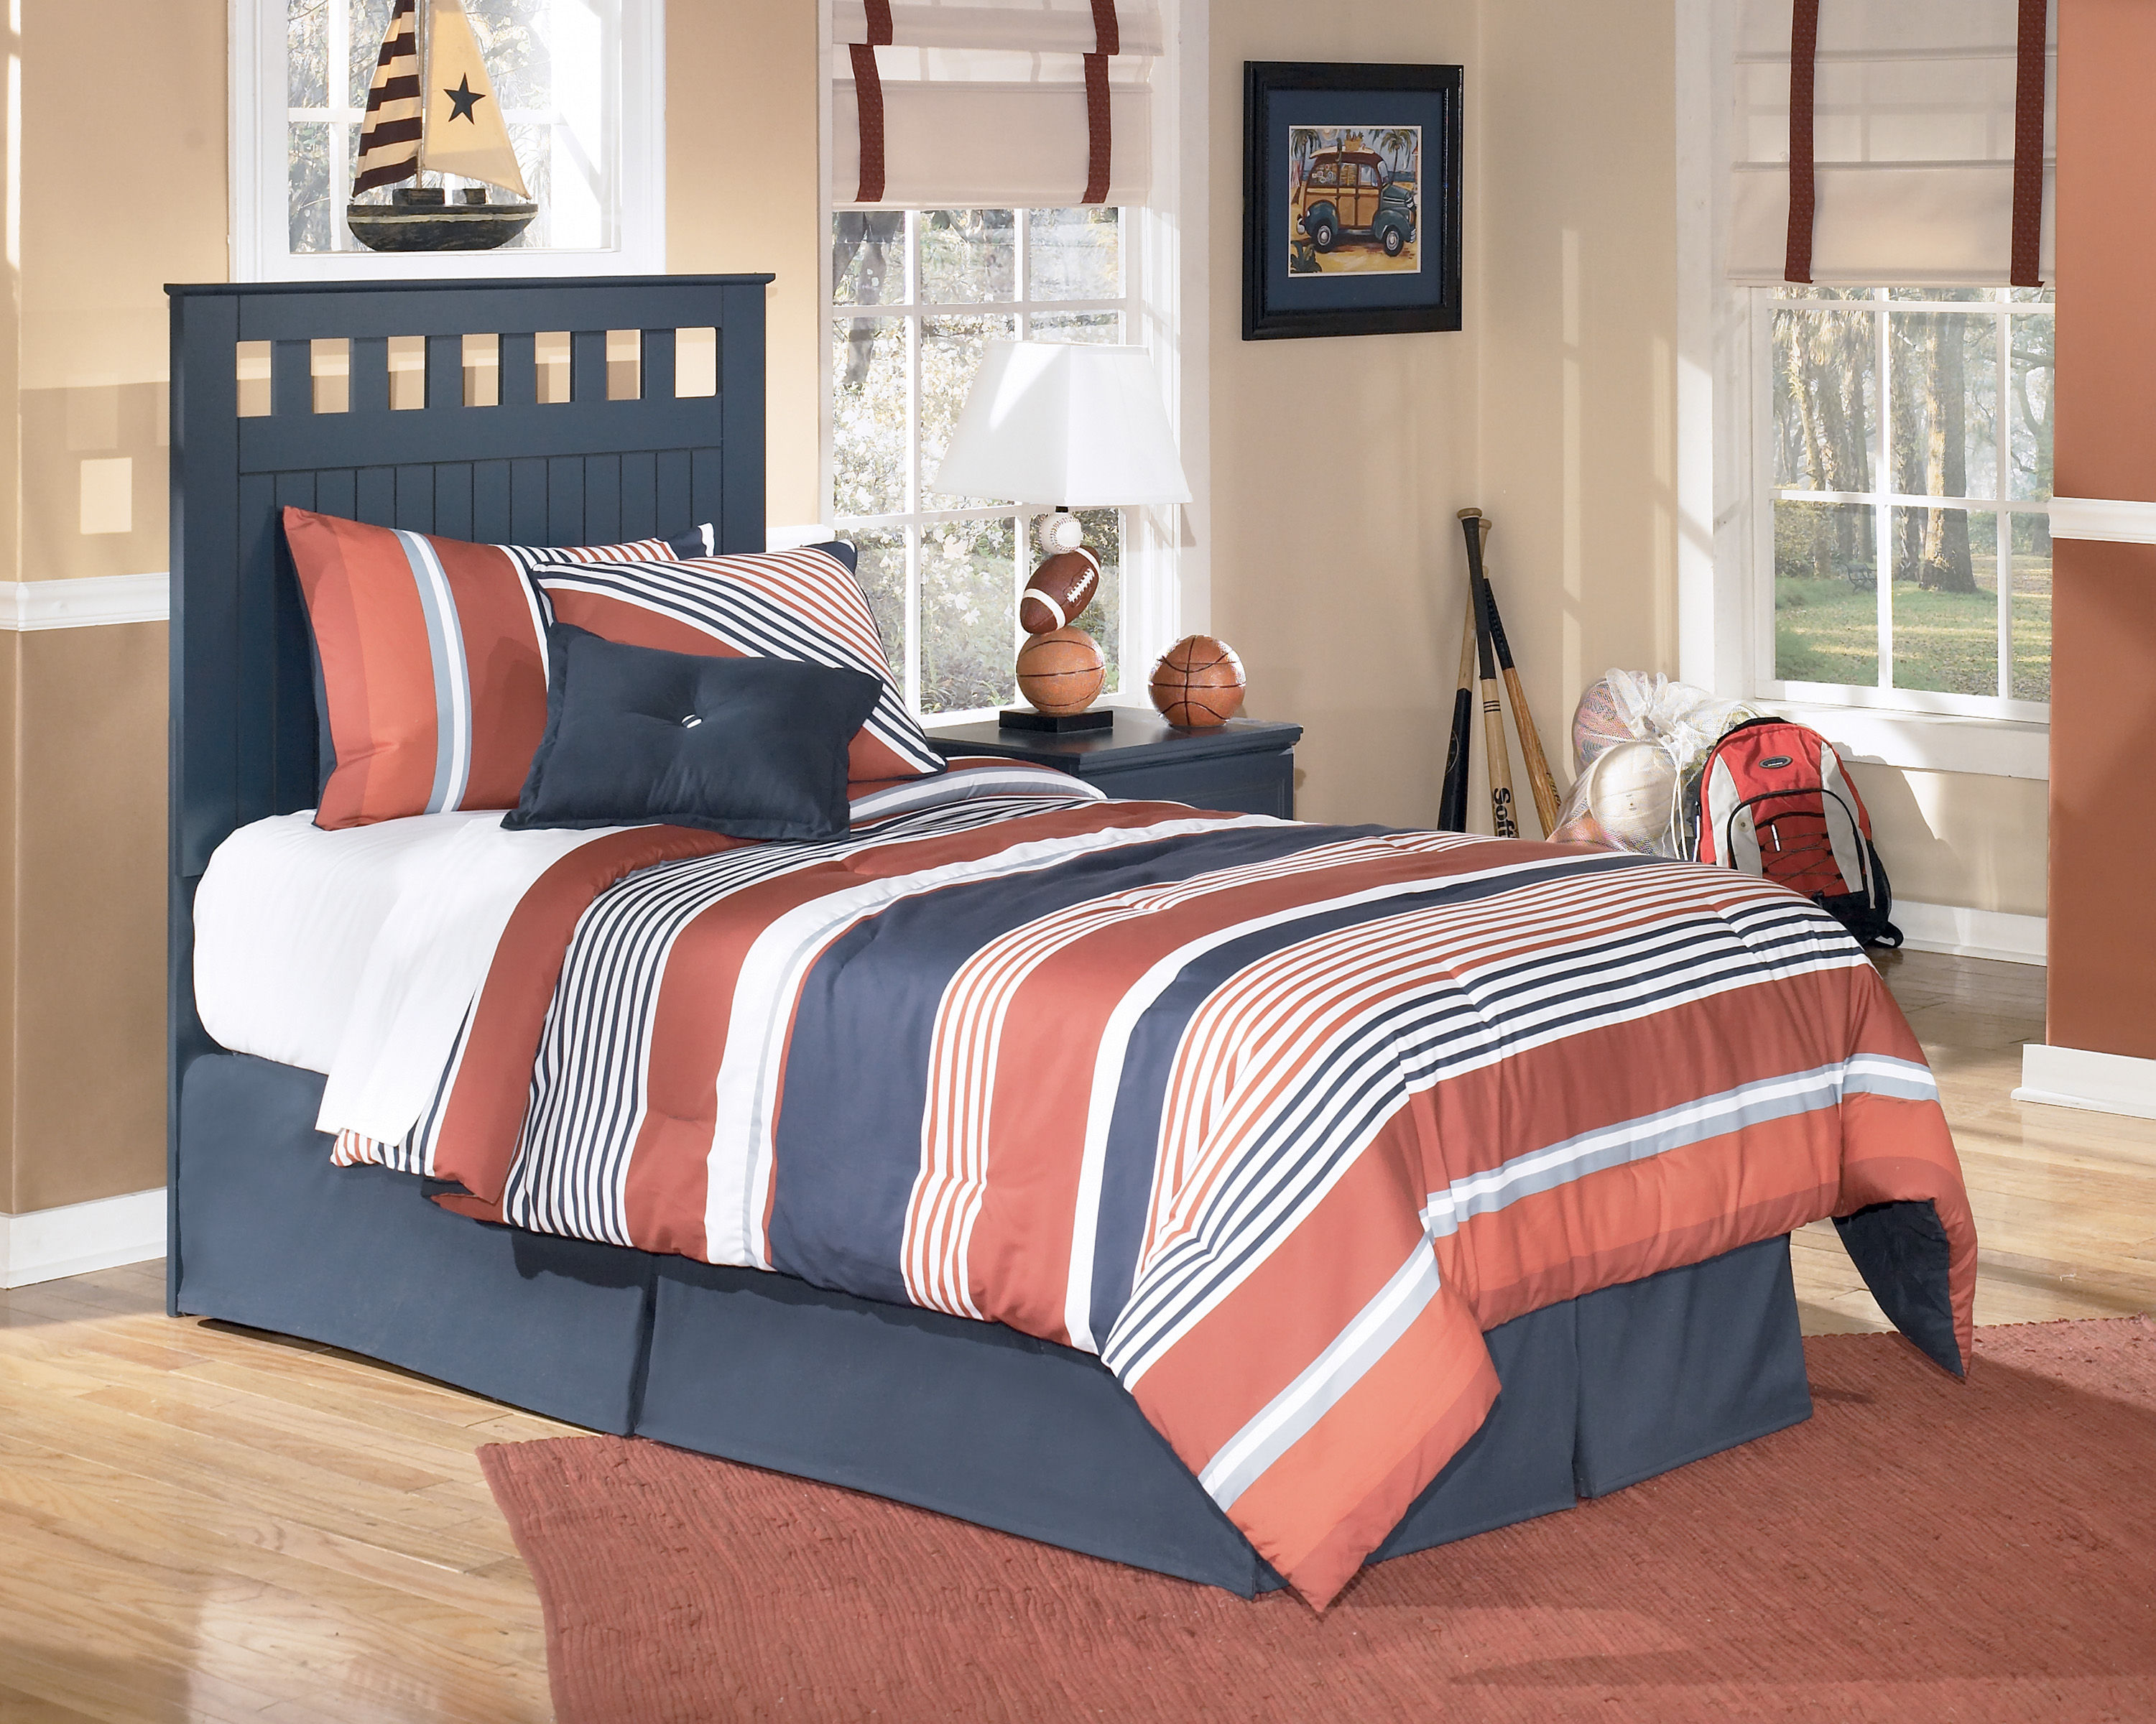 Ashley Furniture Leo Blue Twin Headboard With Bed Frame The Classy